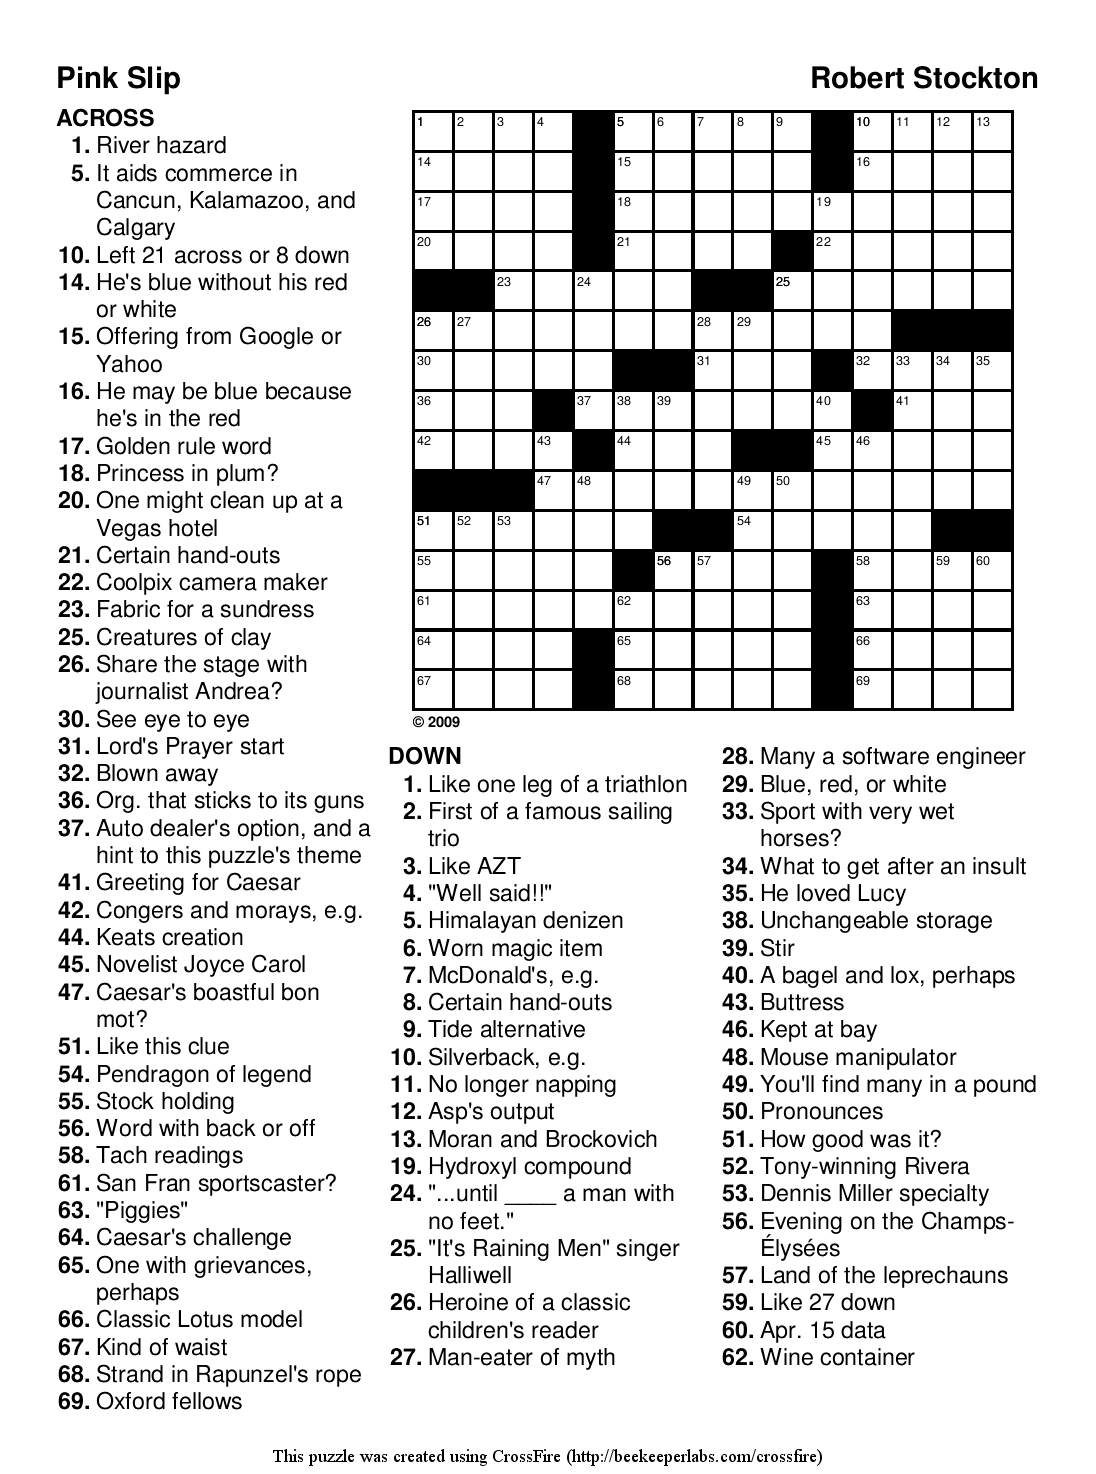 Printable Puzzles For Adults | Easy Word Puzzles Printable Festivals - Printable Crossword Puzzles Medium Difficulty